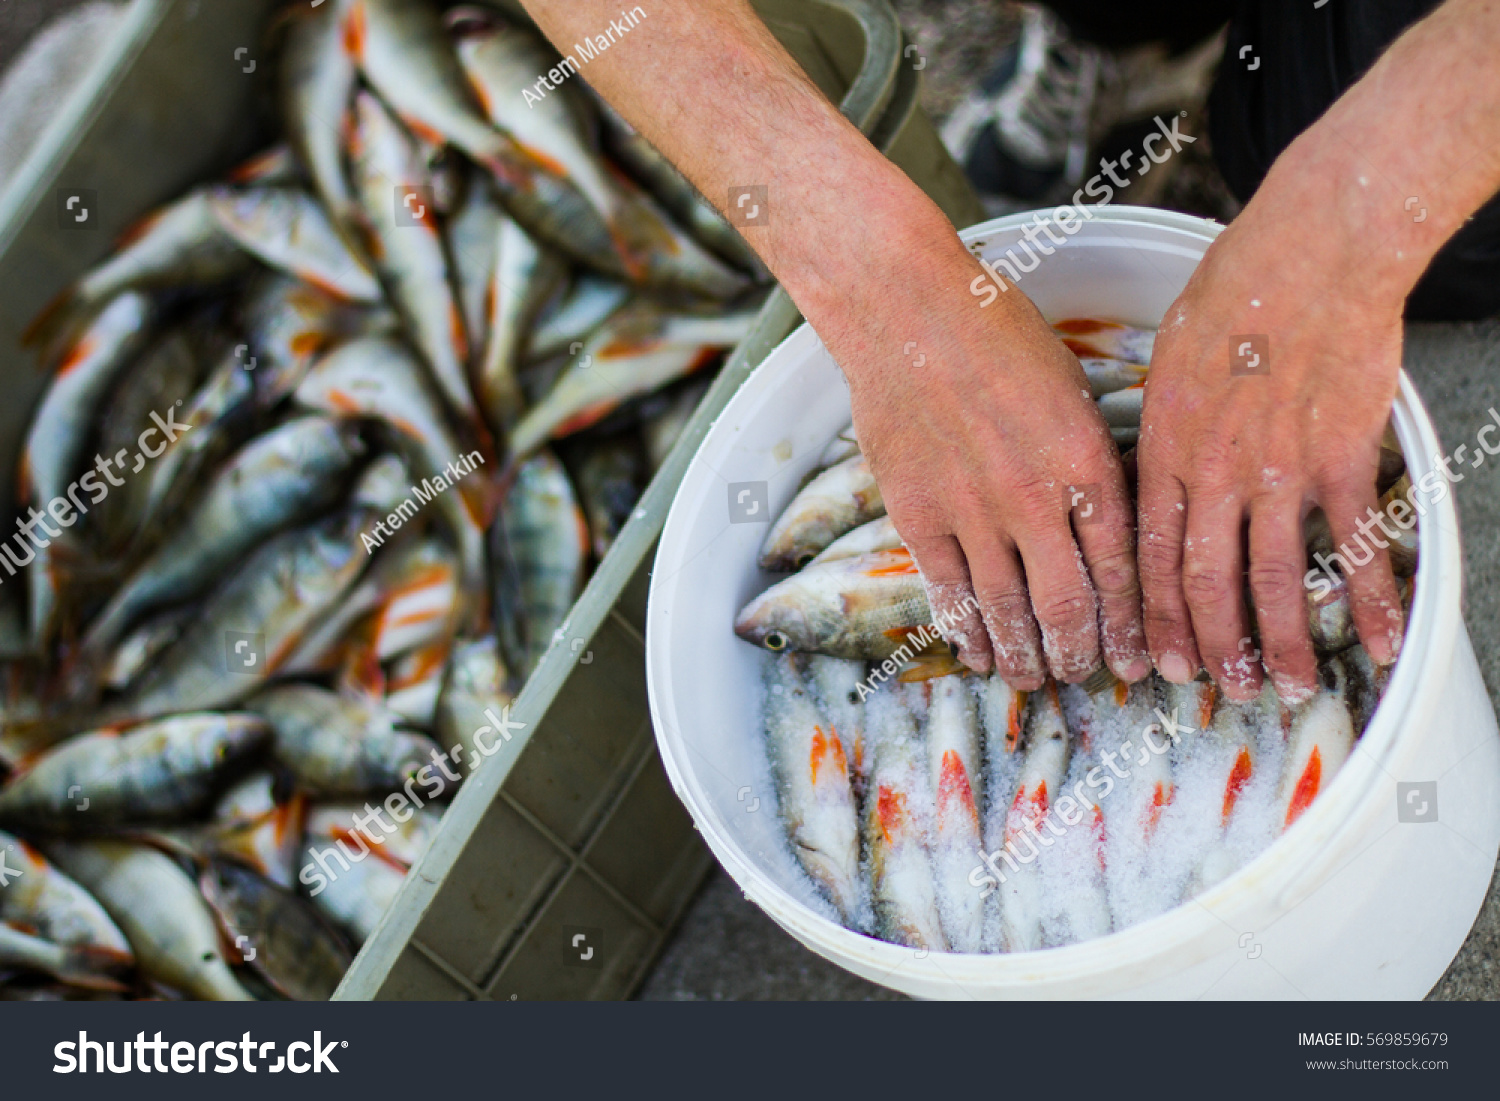 How to put out fish